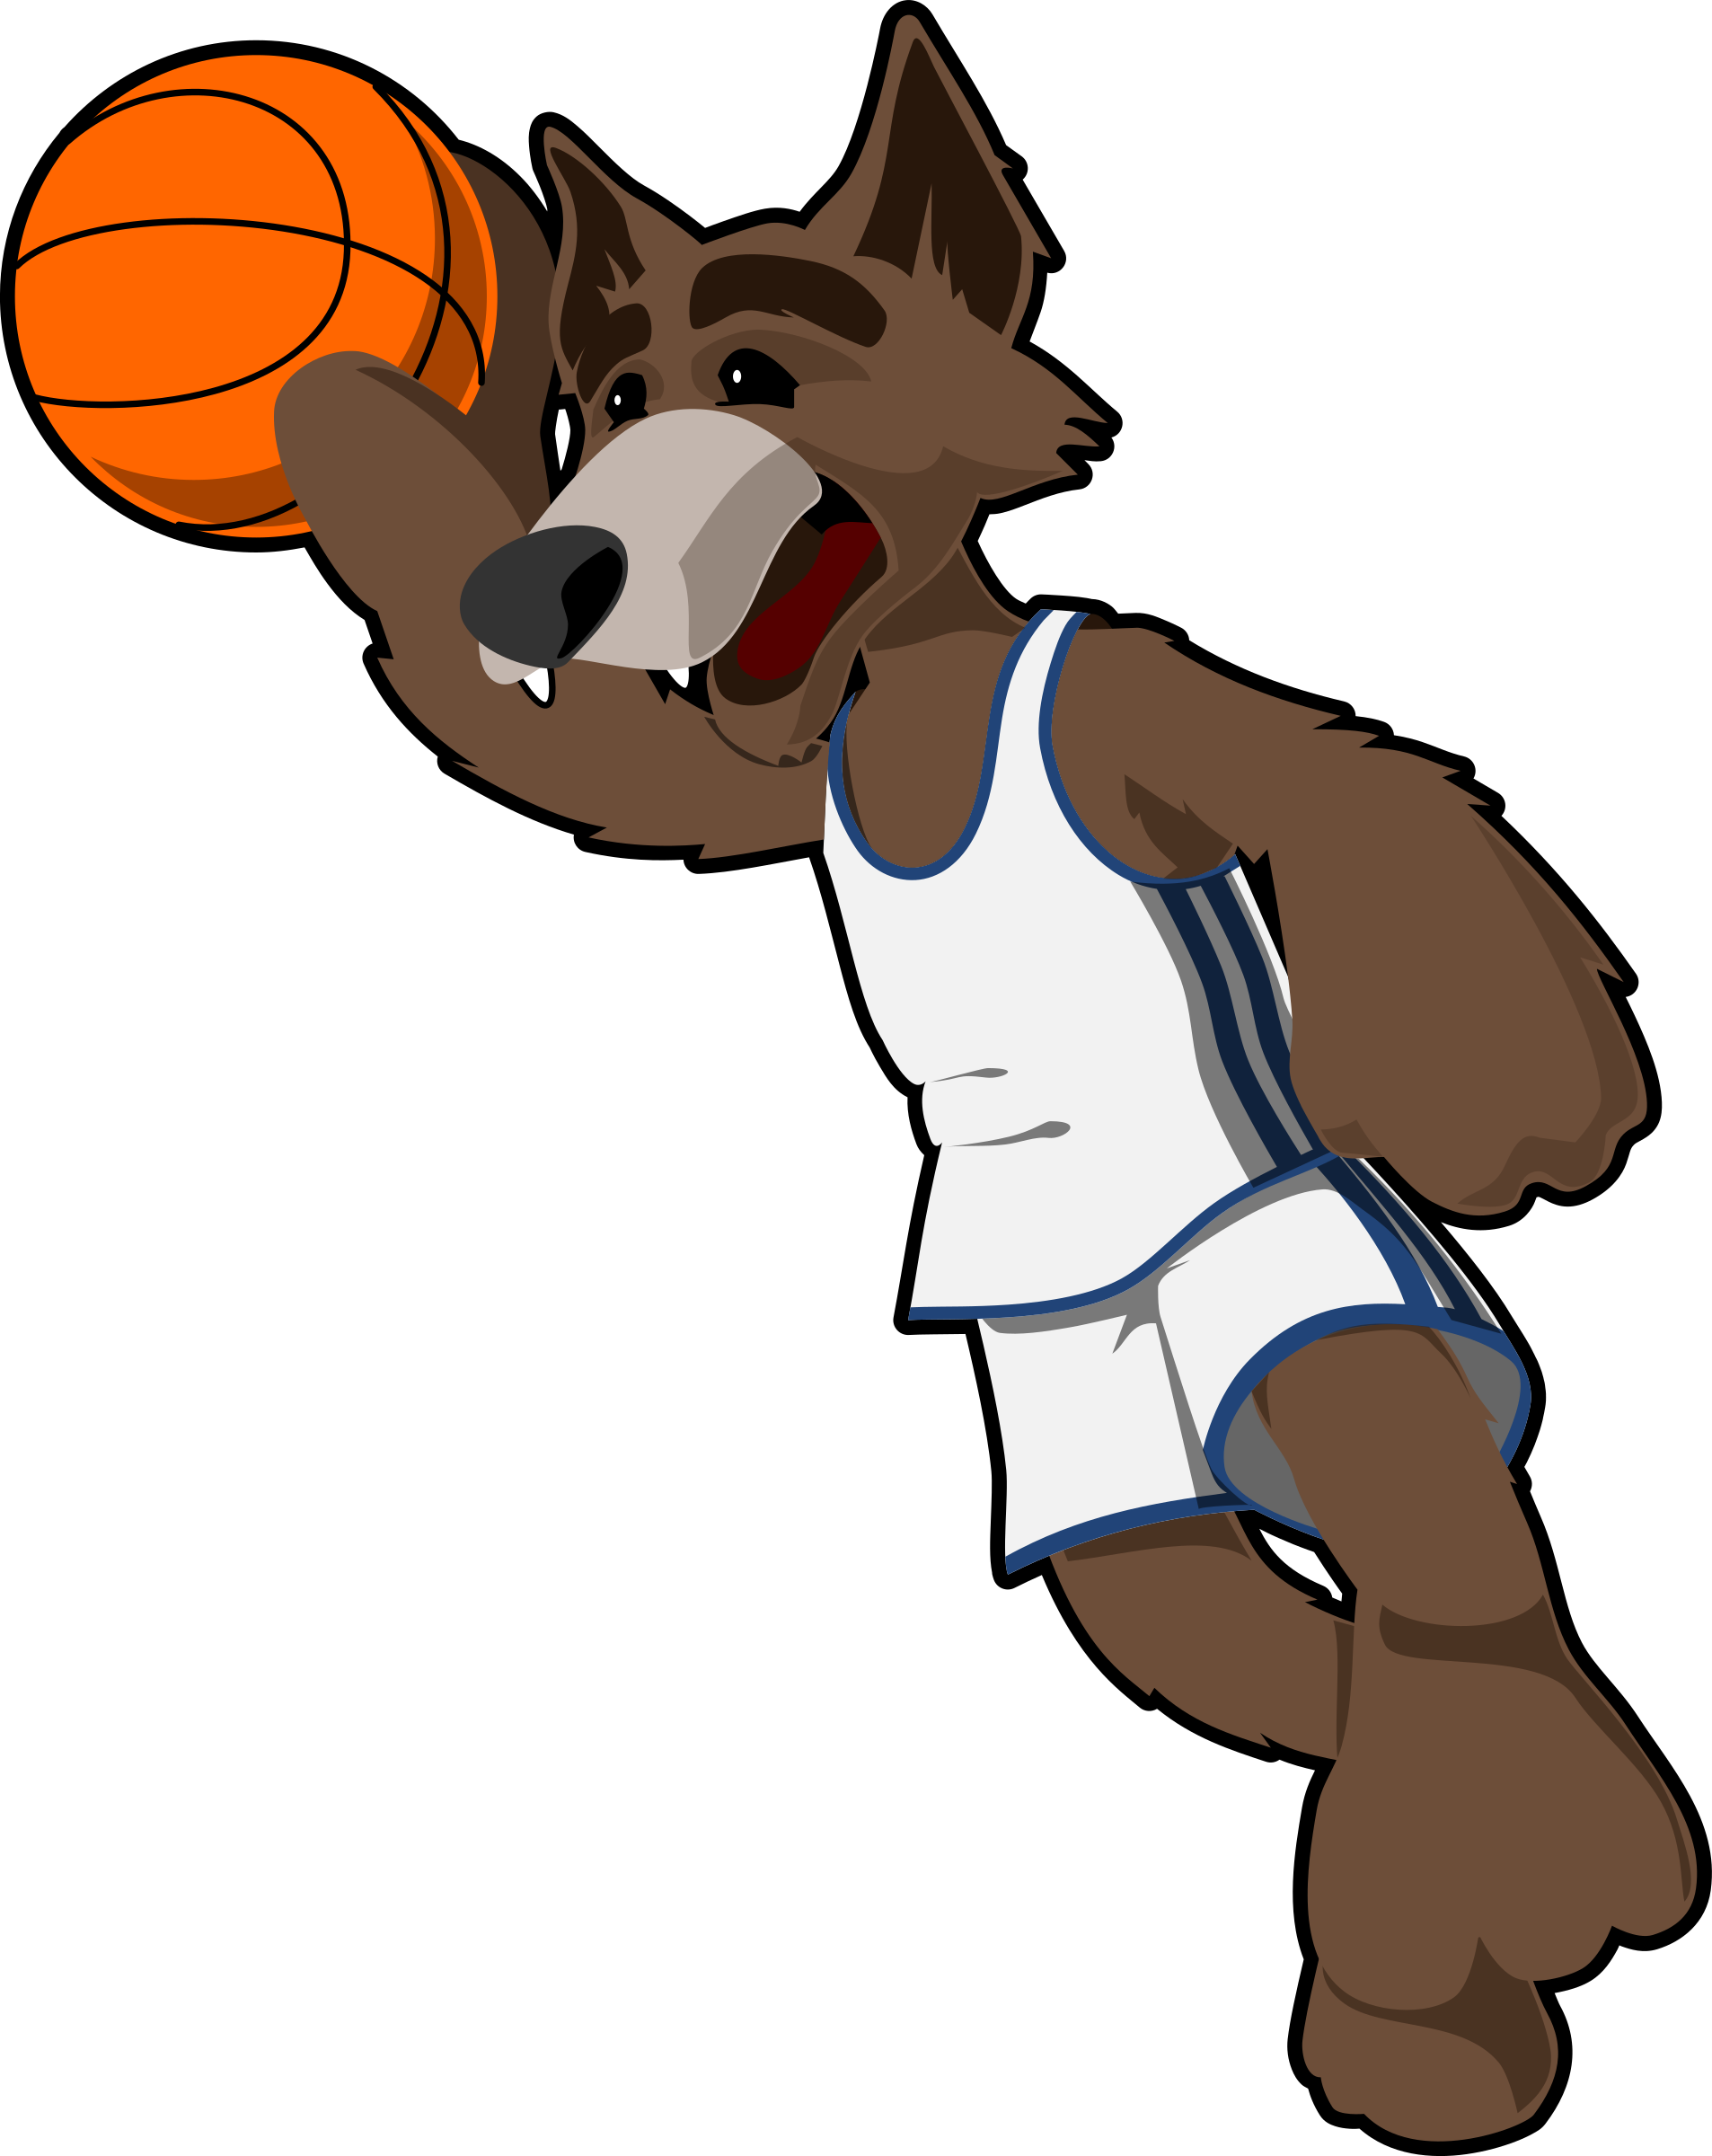 Animals playing basketball clipart